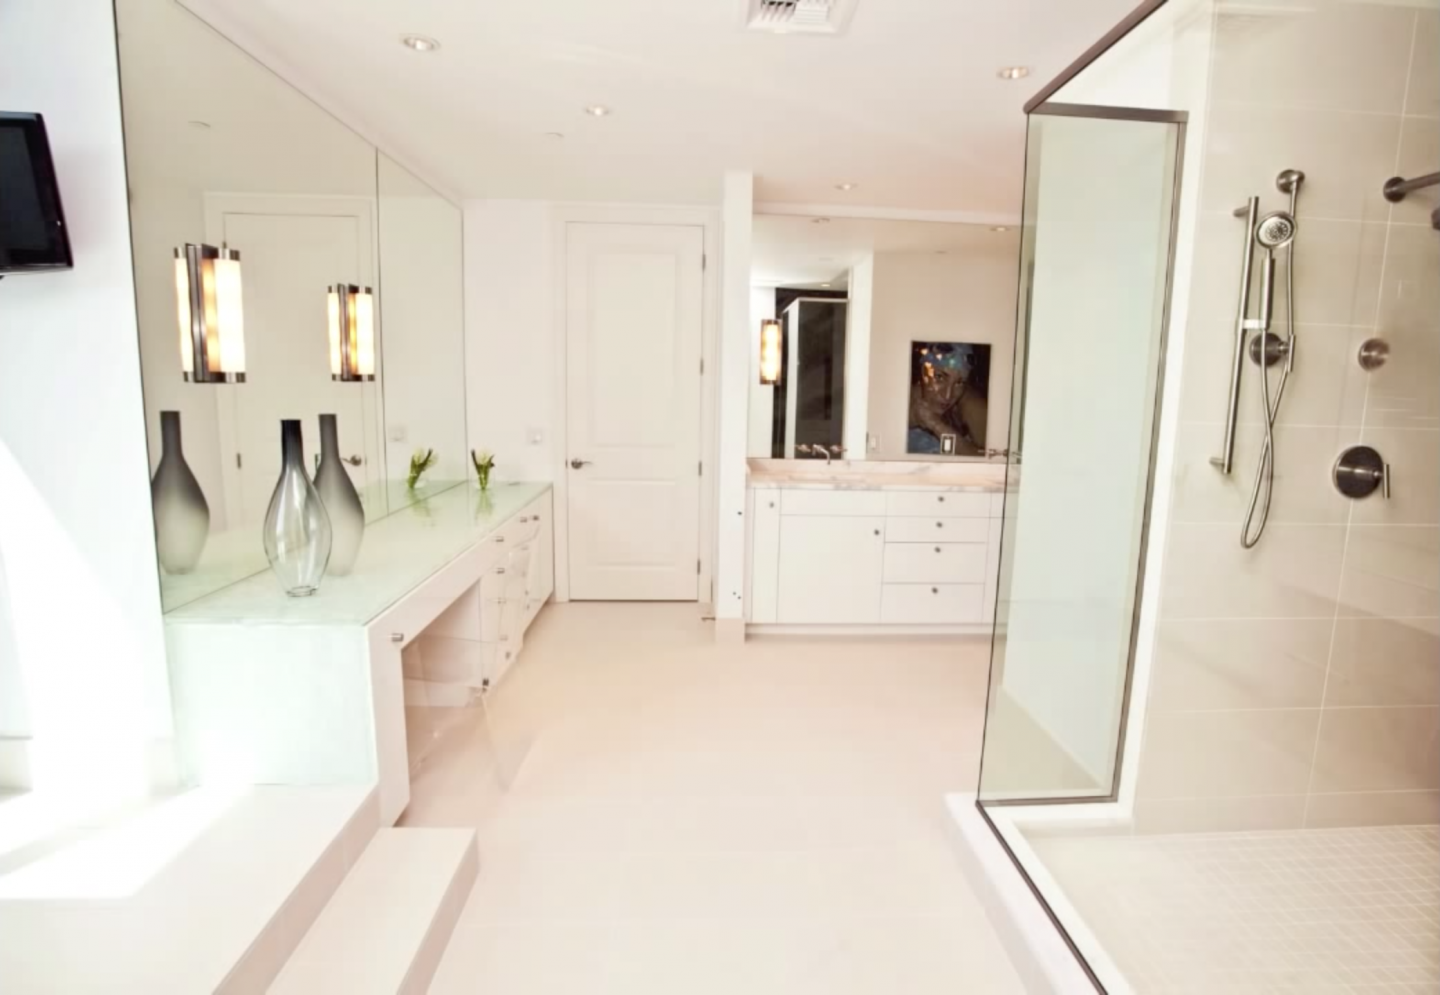 Luxurious master bathroom enclosed shower